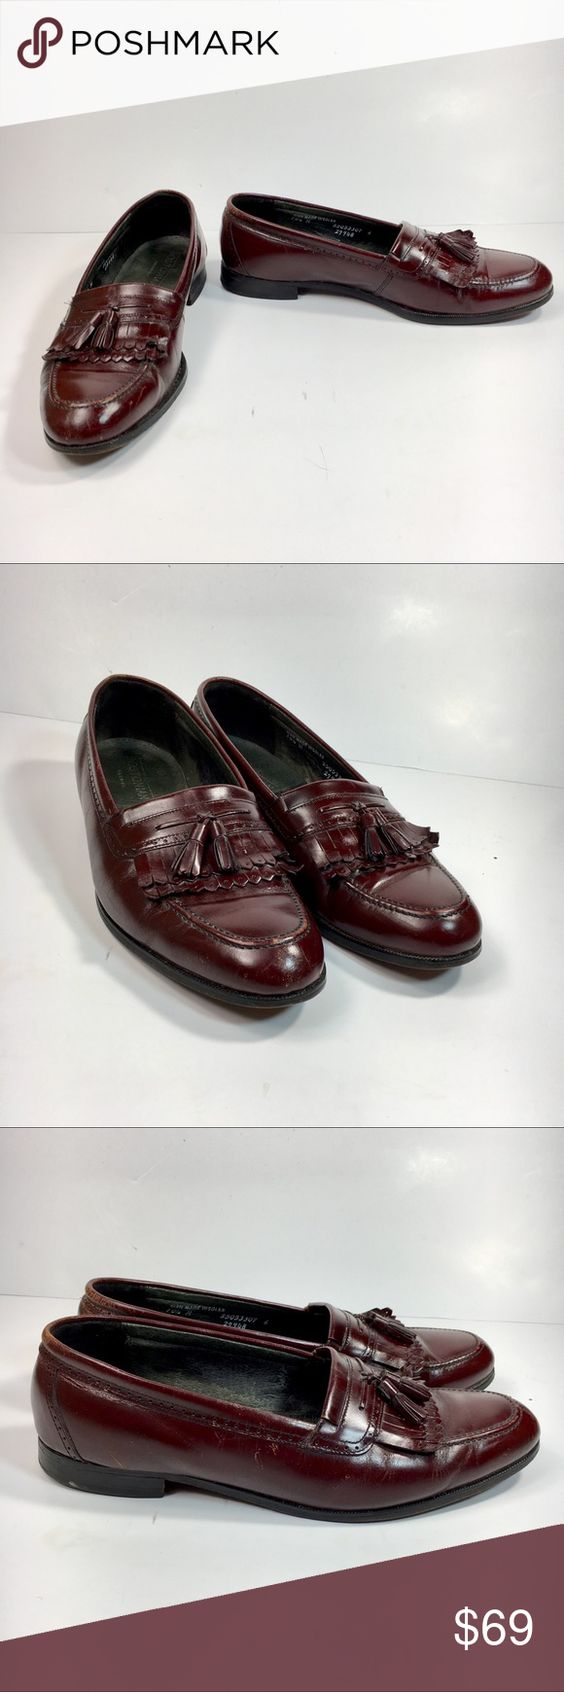 Bostonian USA Men 10.5 Leather Tassel Loafers Bostonian USA Men 10.5 Burgundy Leather Kiltie Tassel Moc Toe Loafer Dress Shoes Preowned in okay condition with moderate scuffing around the toe area of the shoes and some more scuffing on the sides. Bostonian Shoes Loafers & Slip-Ons